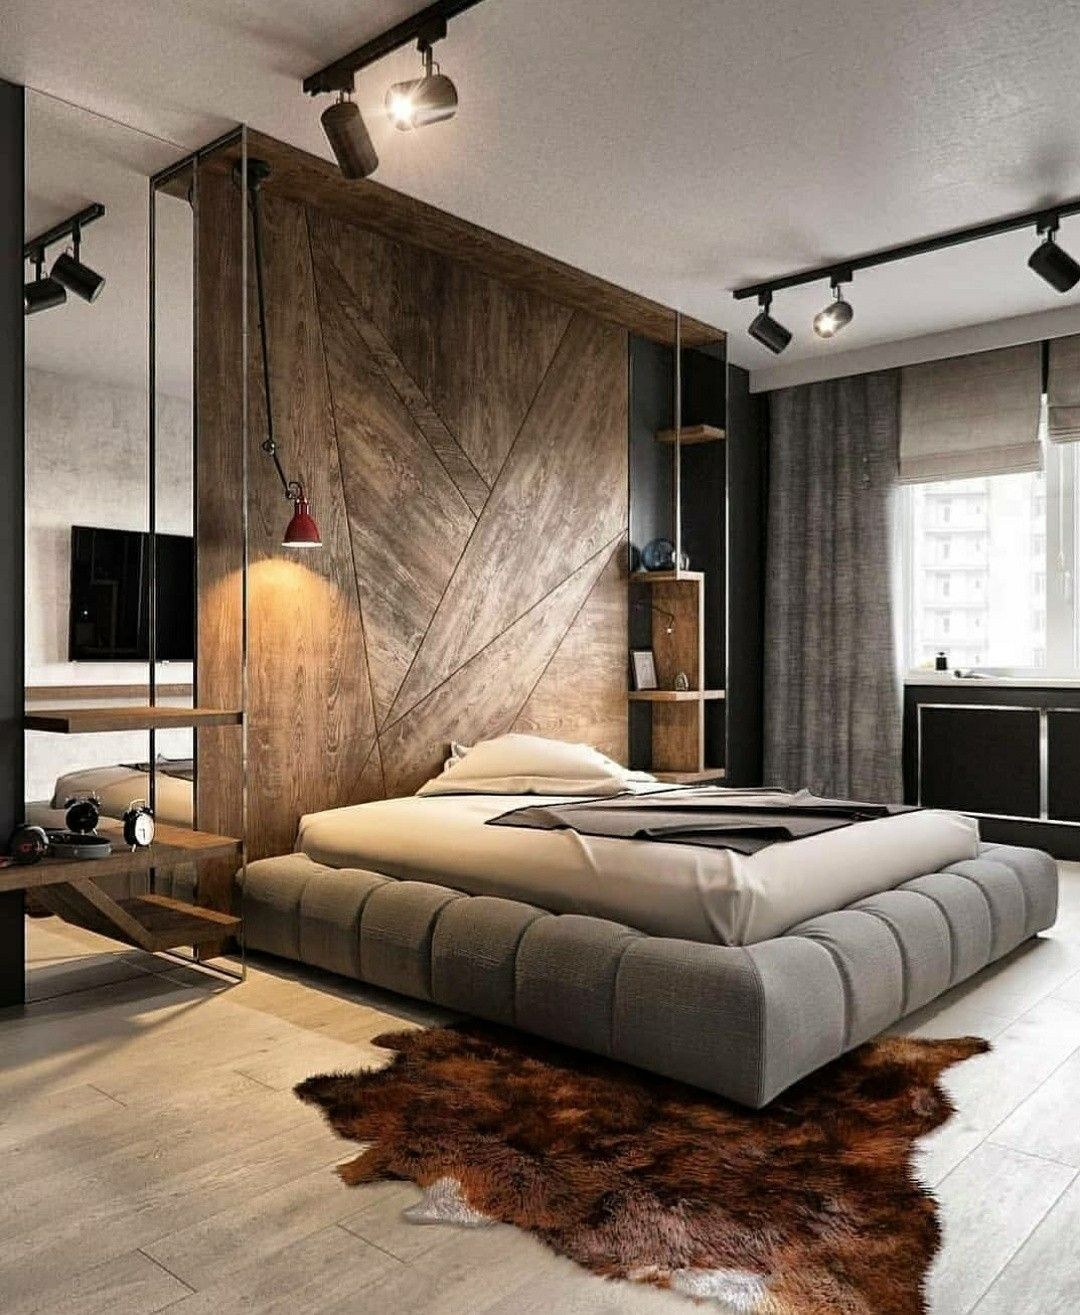 Pin by Philip M on Room Ideas Amazing bedroom designs